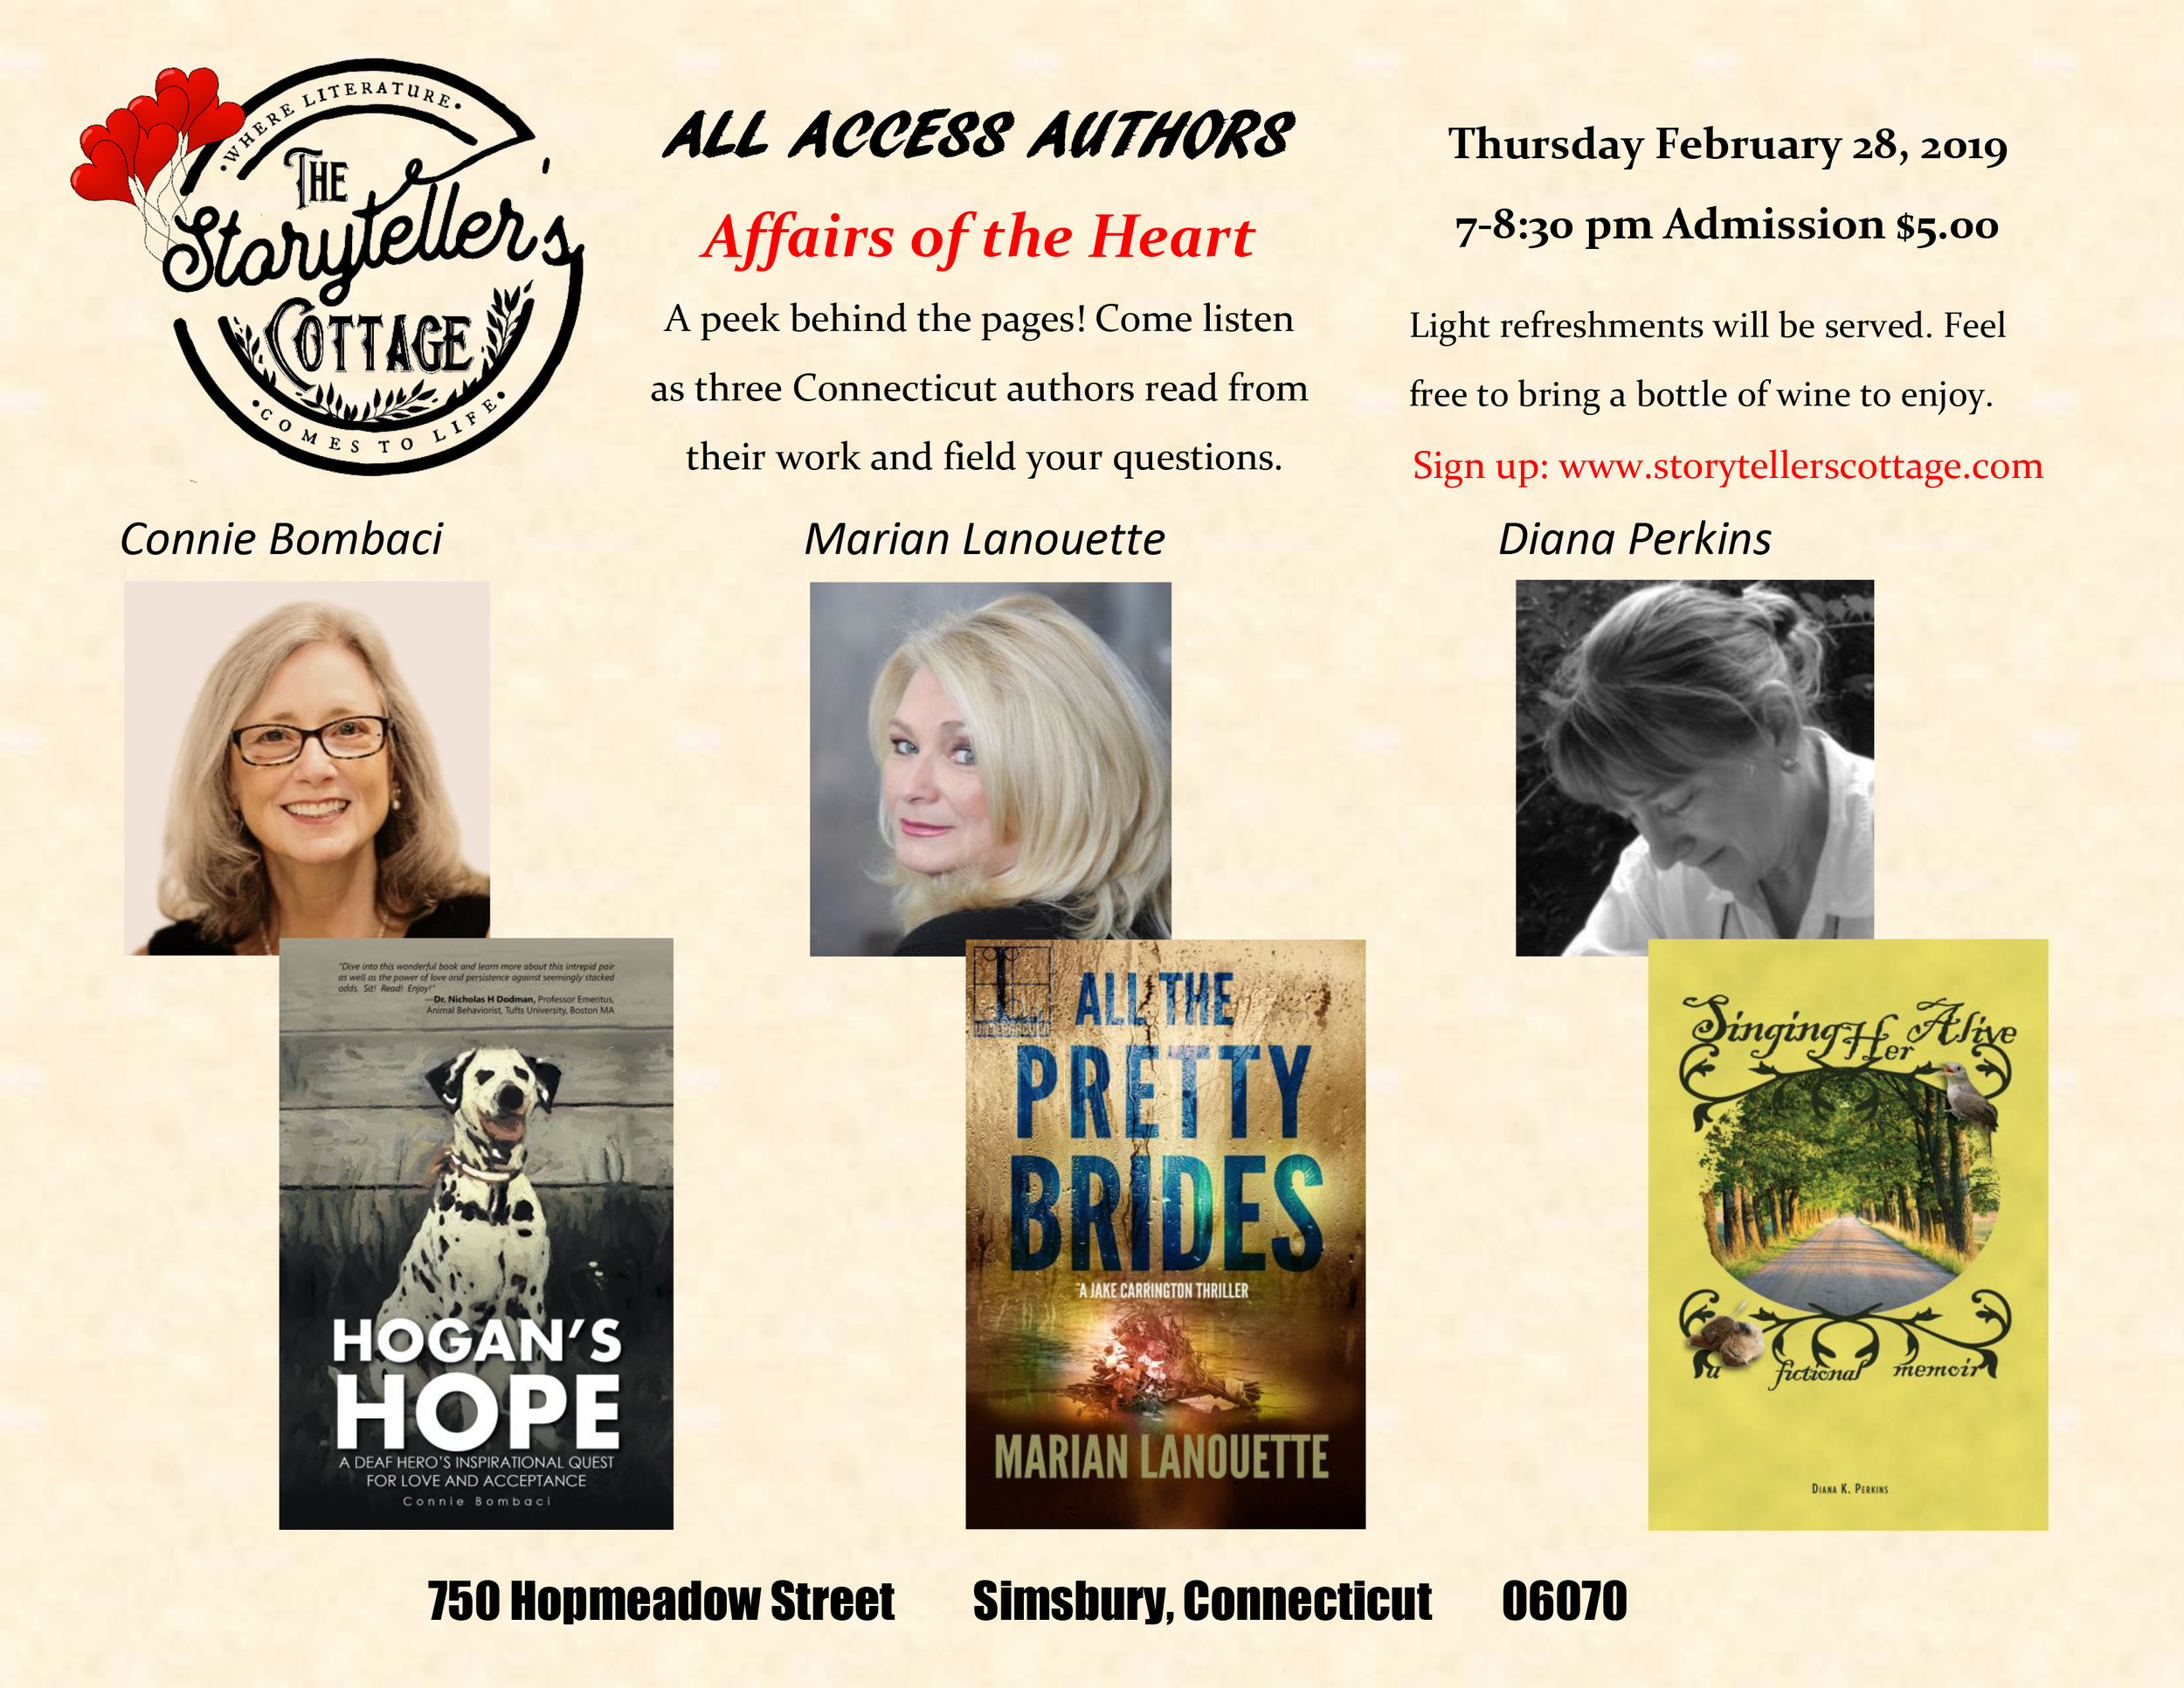 Storytellers-Cottage-ALL ACCESS  AUTHORS Feb-28-19.jpg